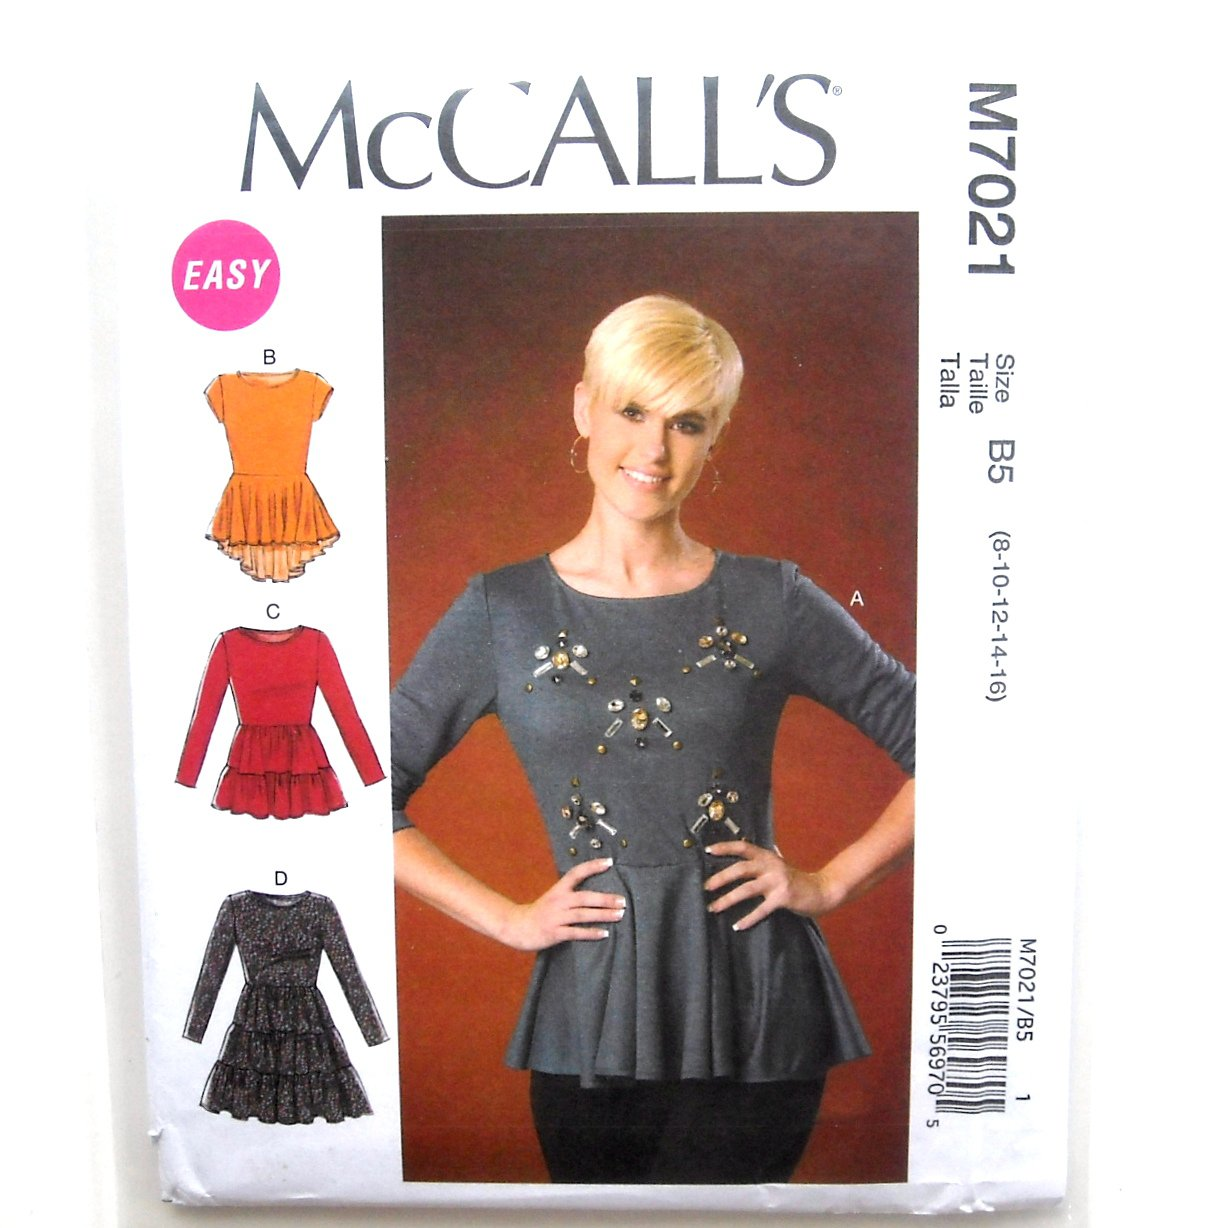 Misses Tops Tunic 8 10 12 14 16 Easy McCalls Sewing Pattern M7021